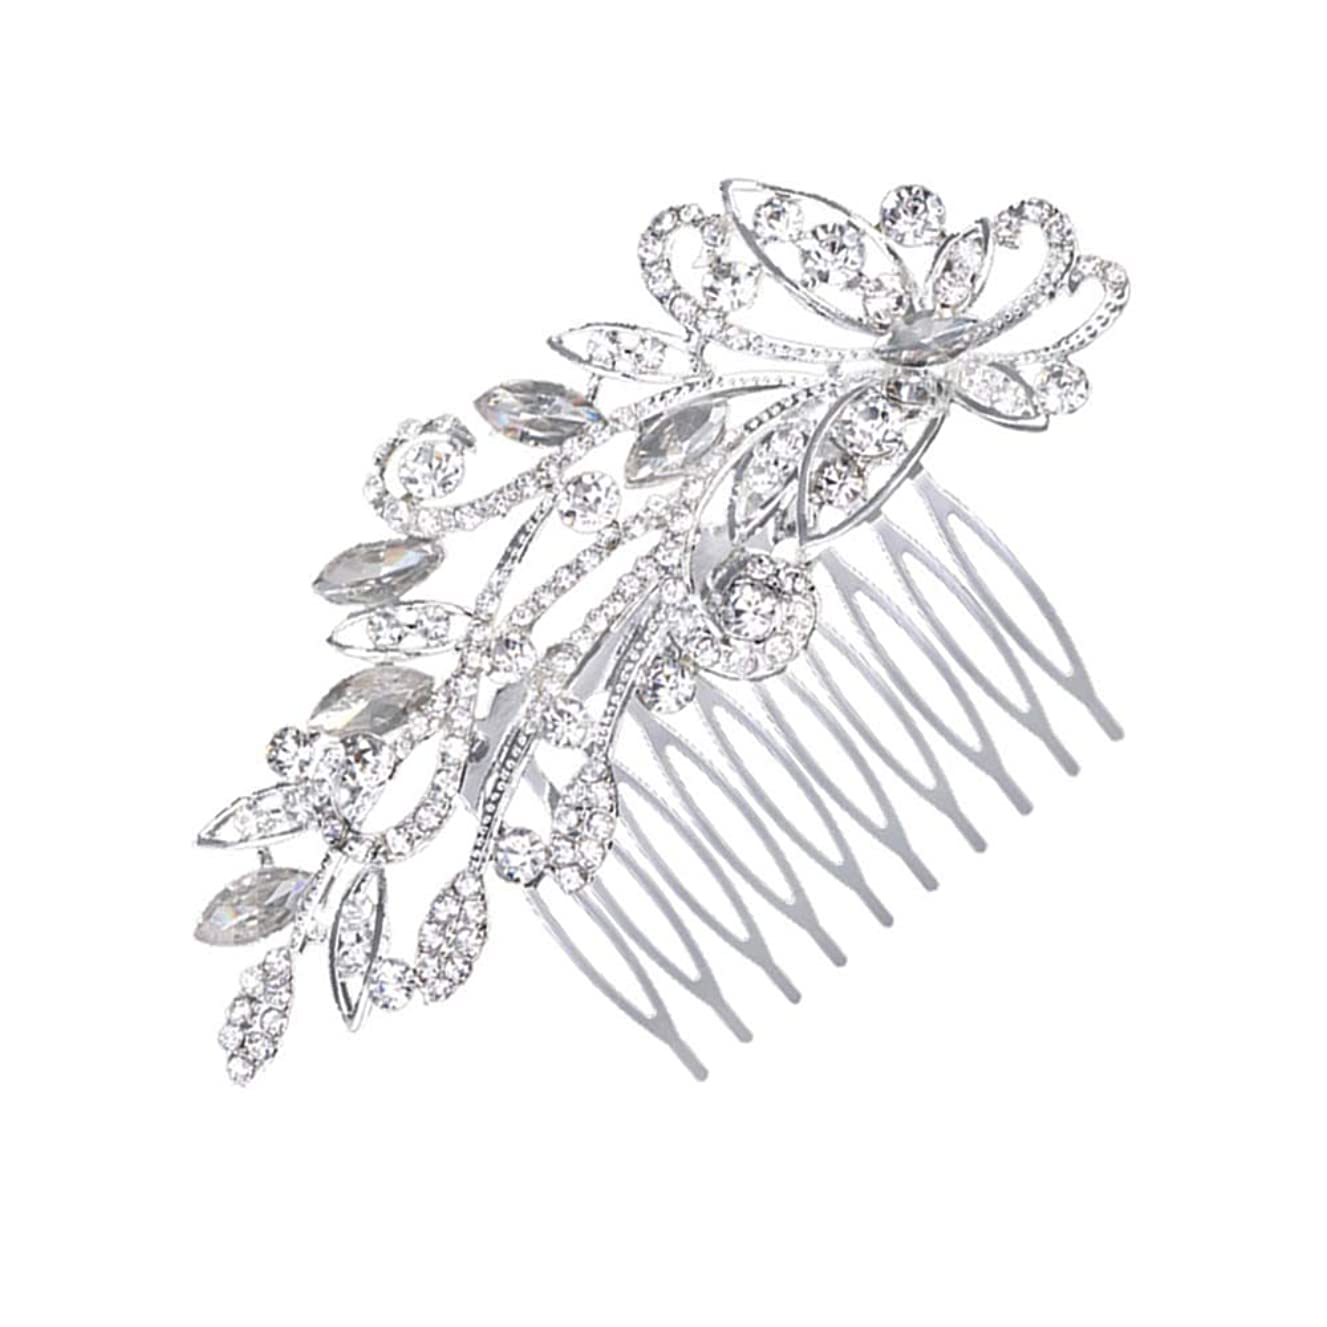 KaLaiXing Brand Bridal Hair Comb Wedding Hair Side Combs Bridal Head Pin Headpiece Crystal Pearls Flower Bride Bridesmaid-HD03